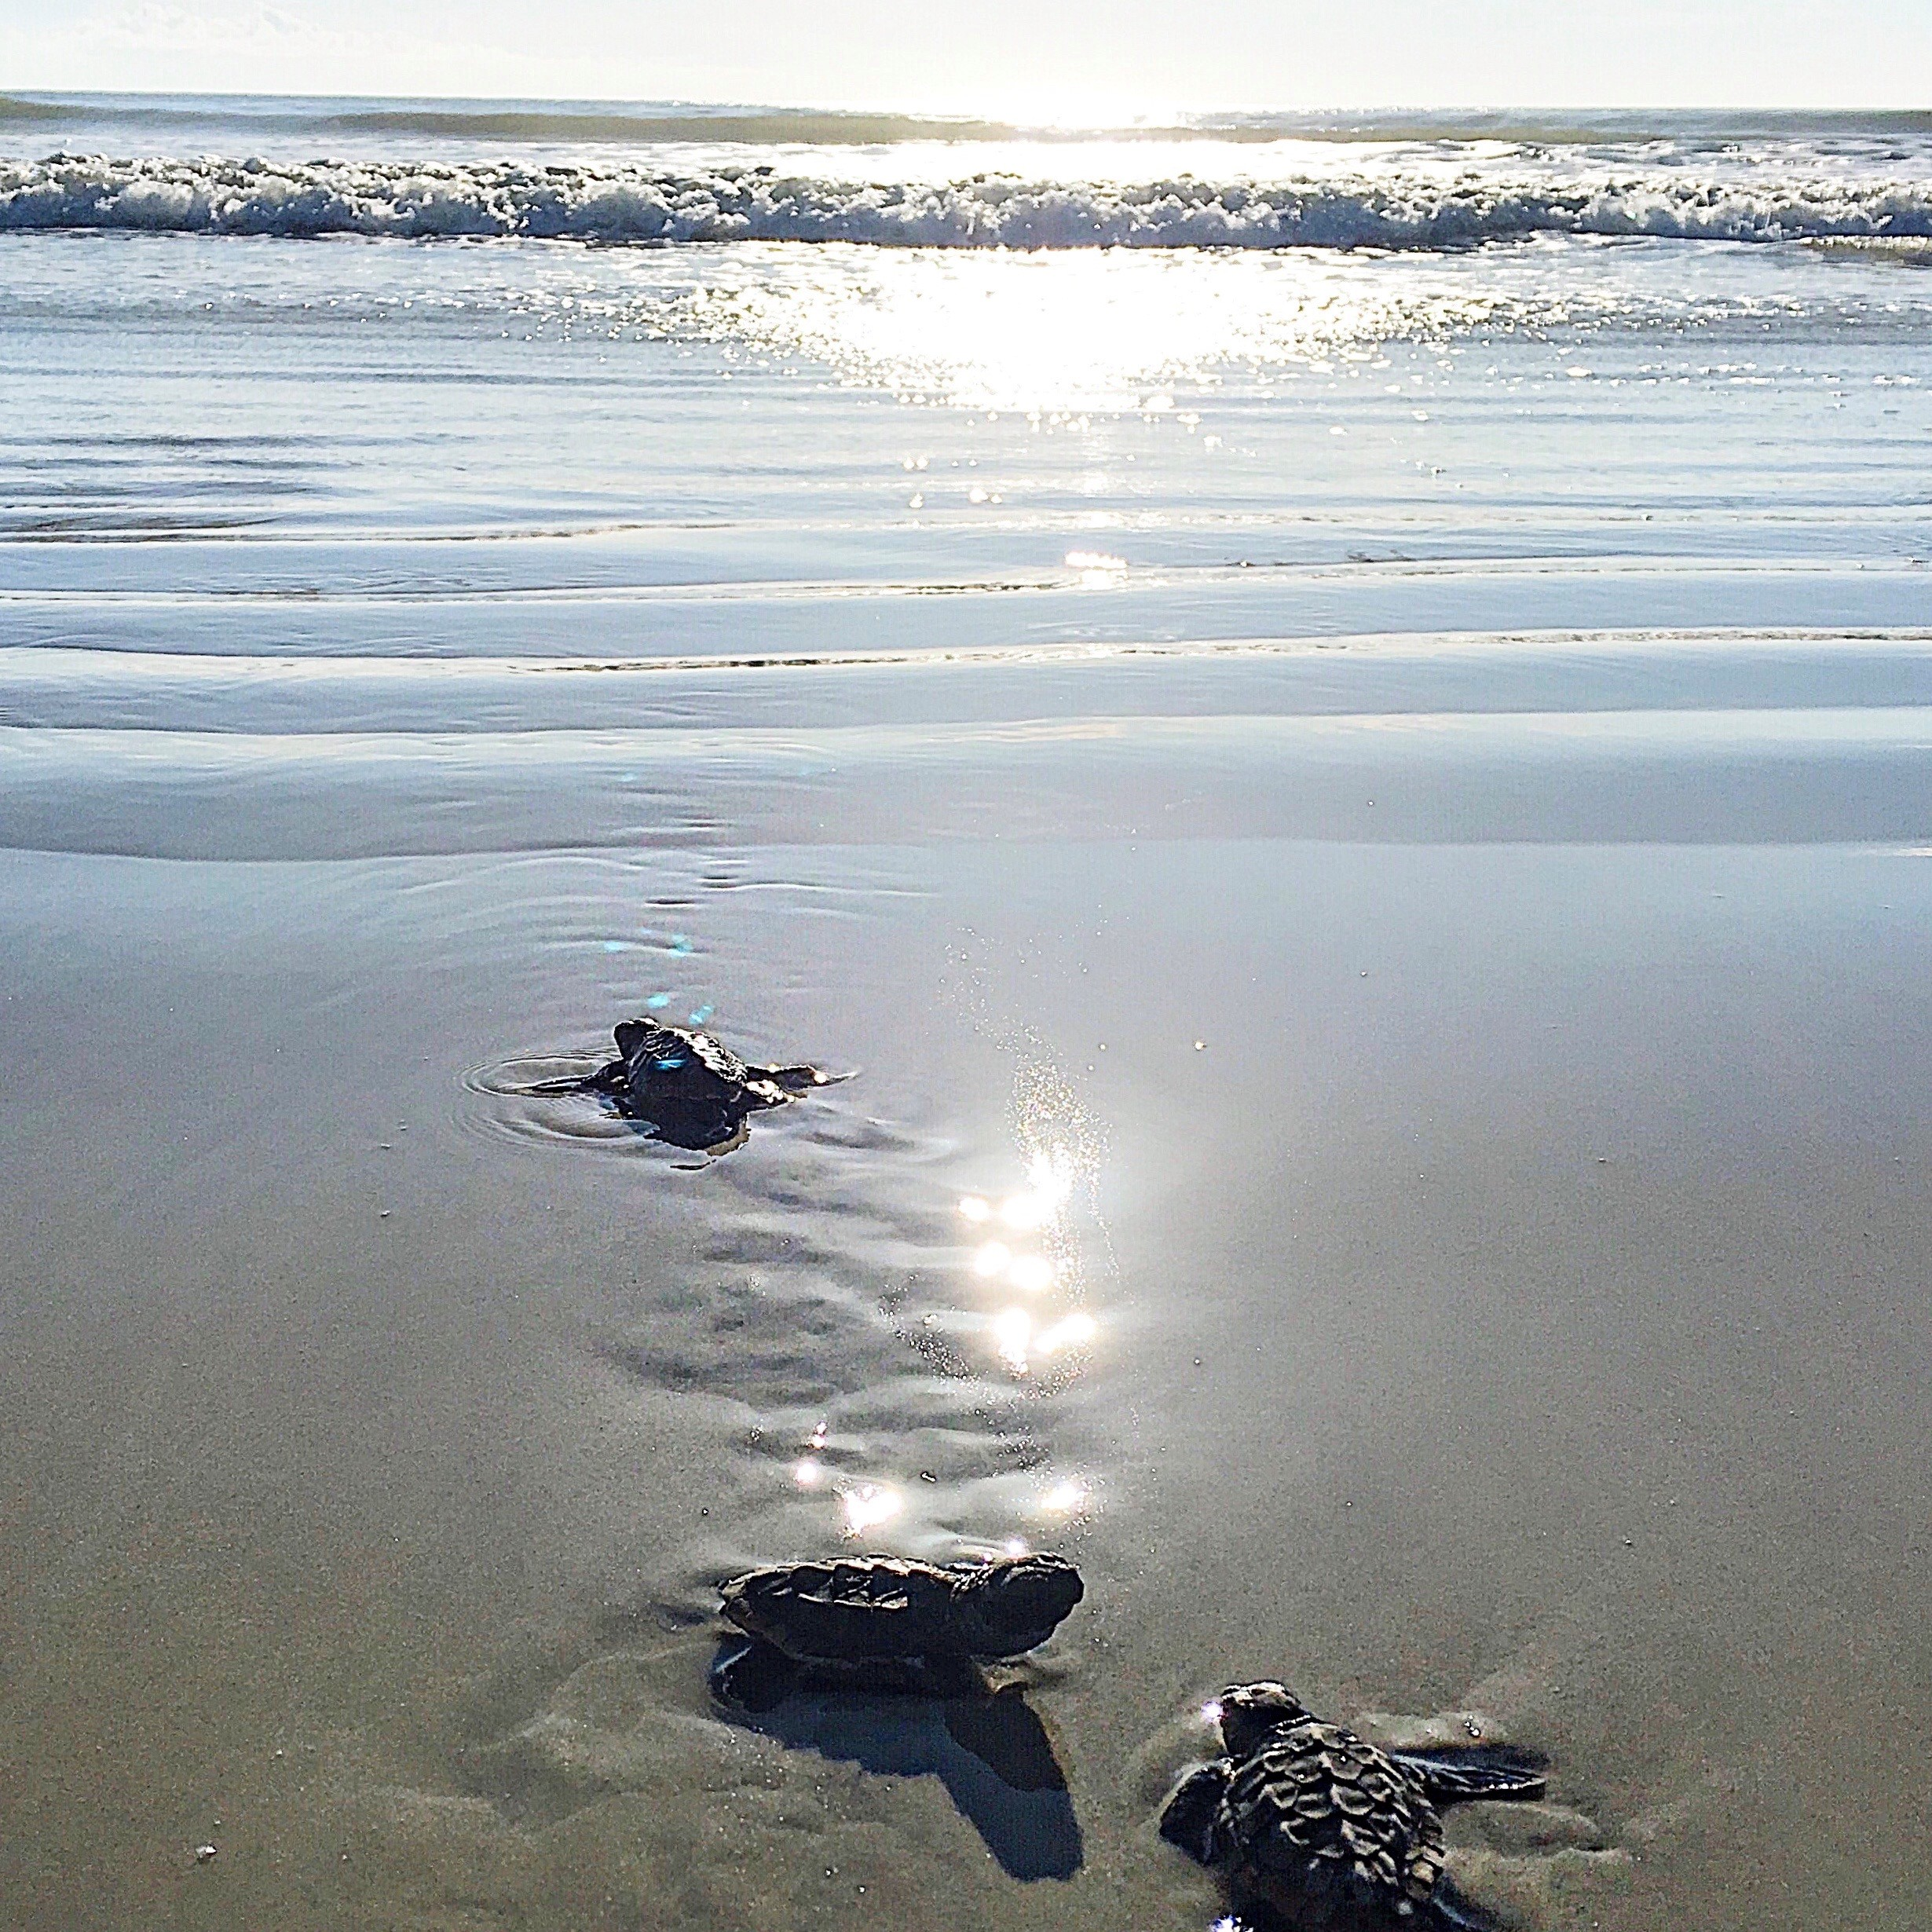 Sea turtle hatchlings